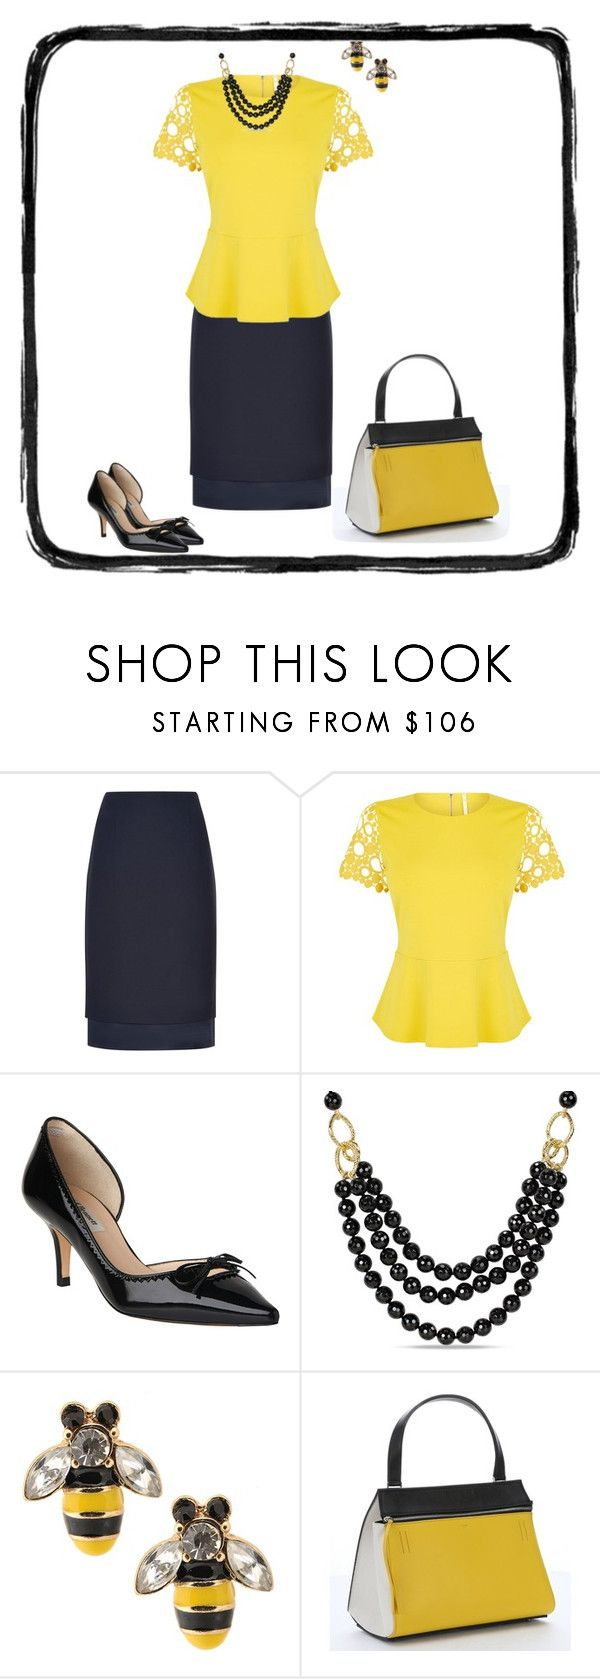 """""""Untitled #1000"""" by milliemarie ❤ liked on Polyvore featuring Jaeger, Karen Millen, L.K.Bennett, Ice and CÉLINE"""